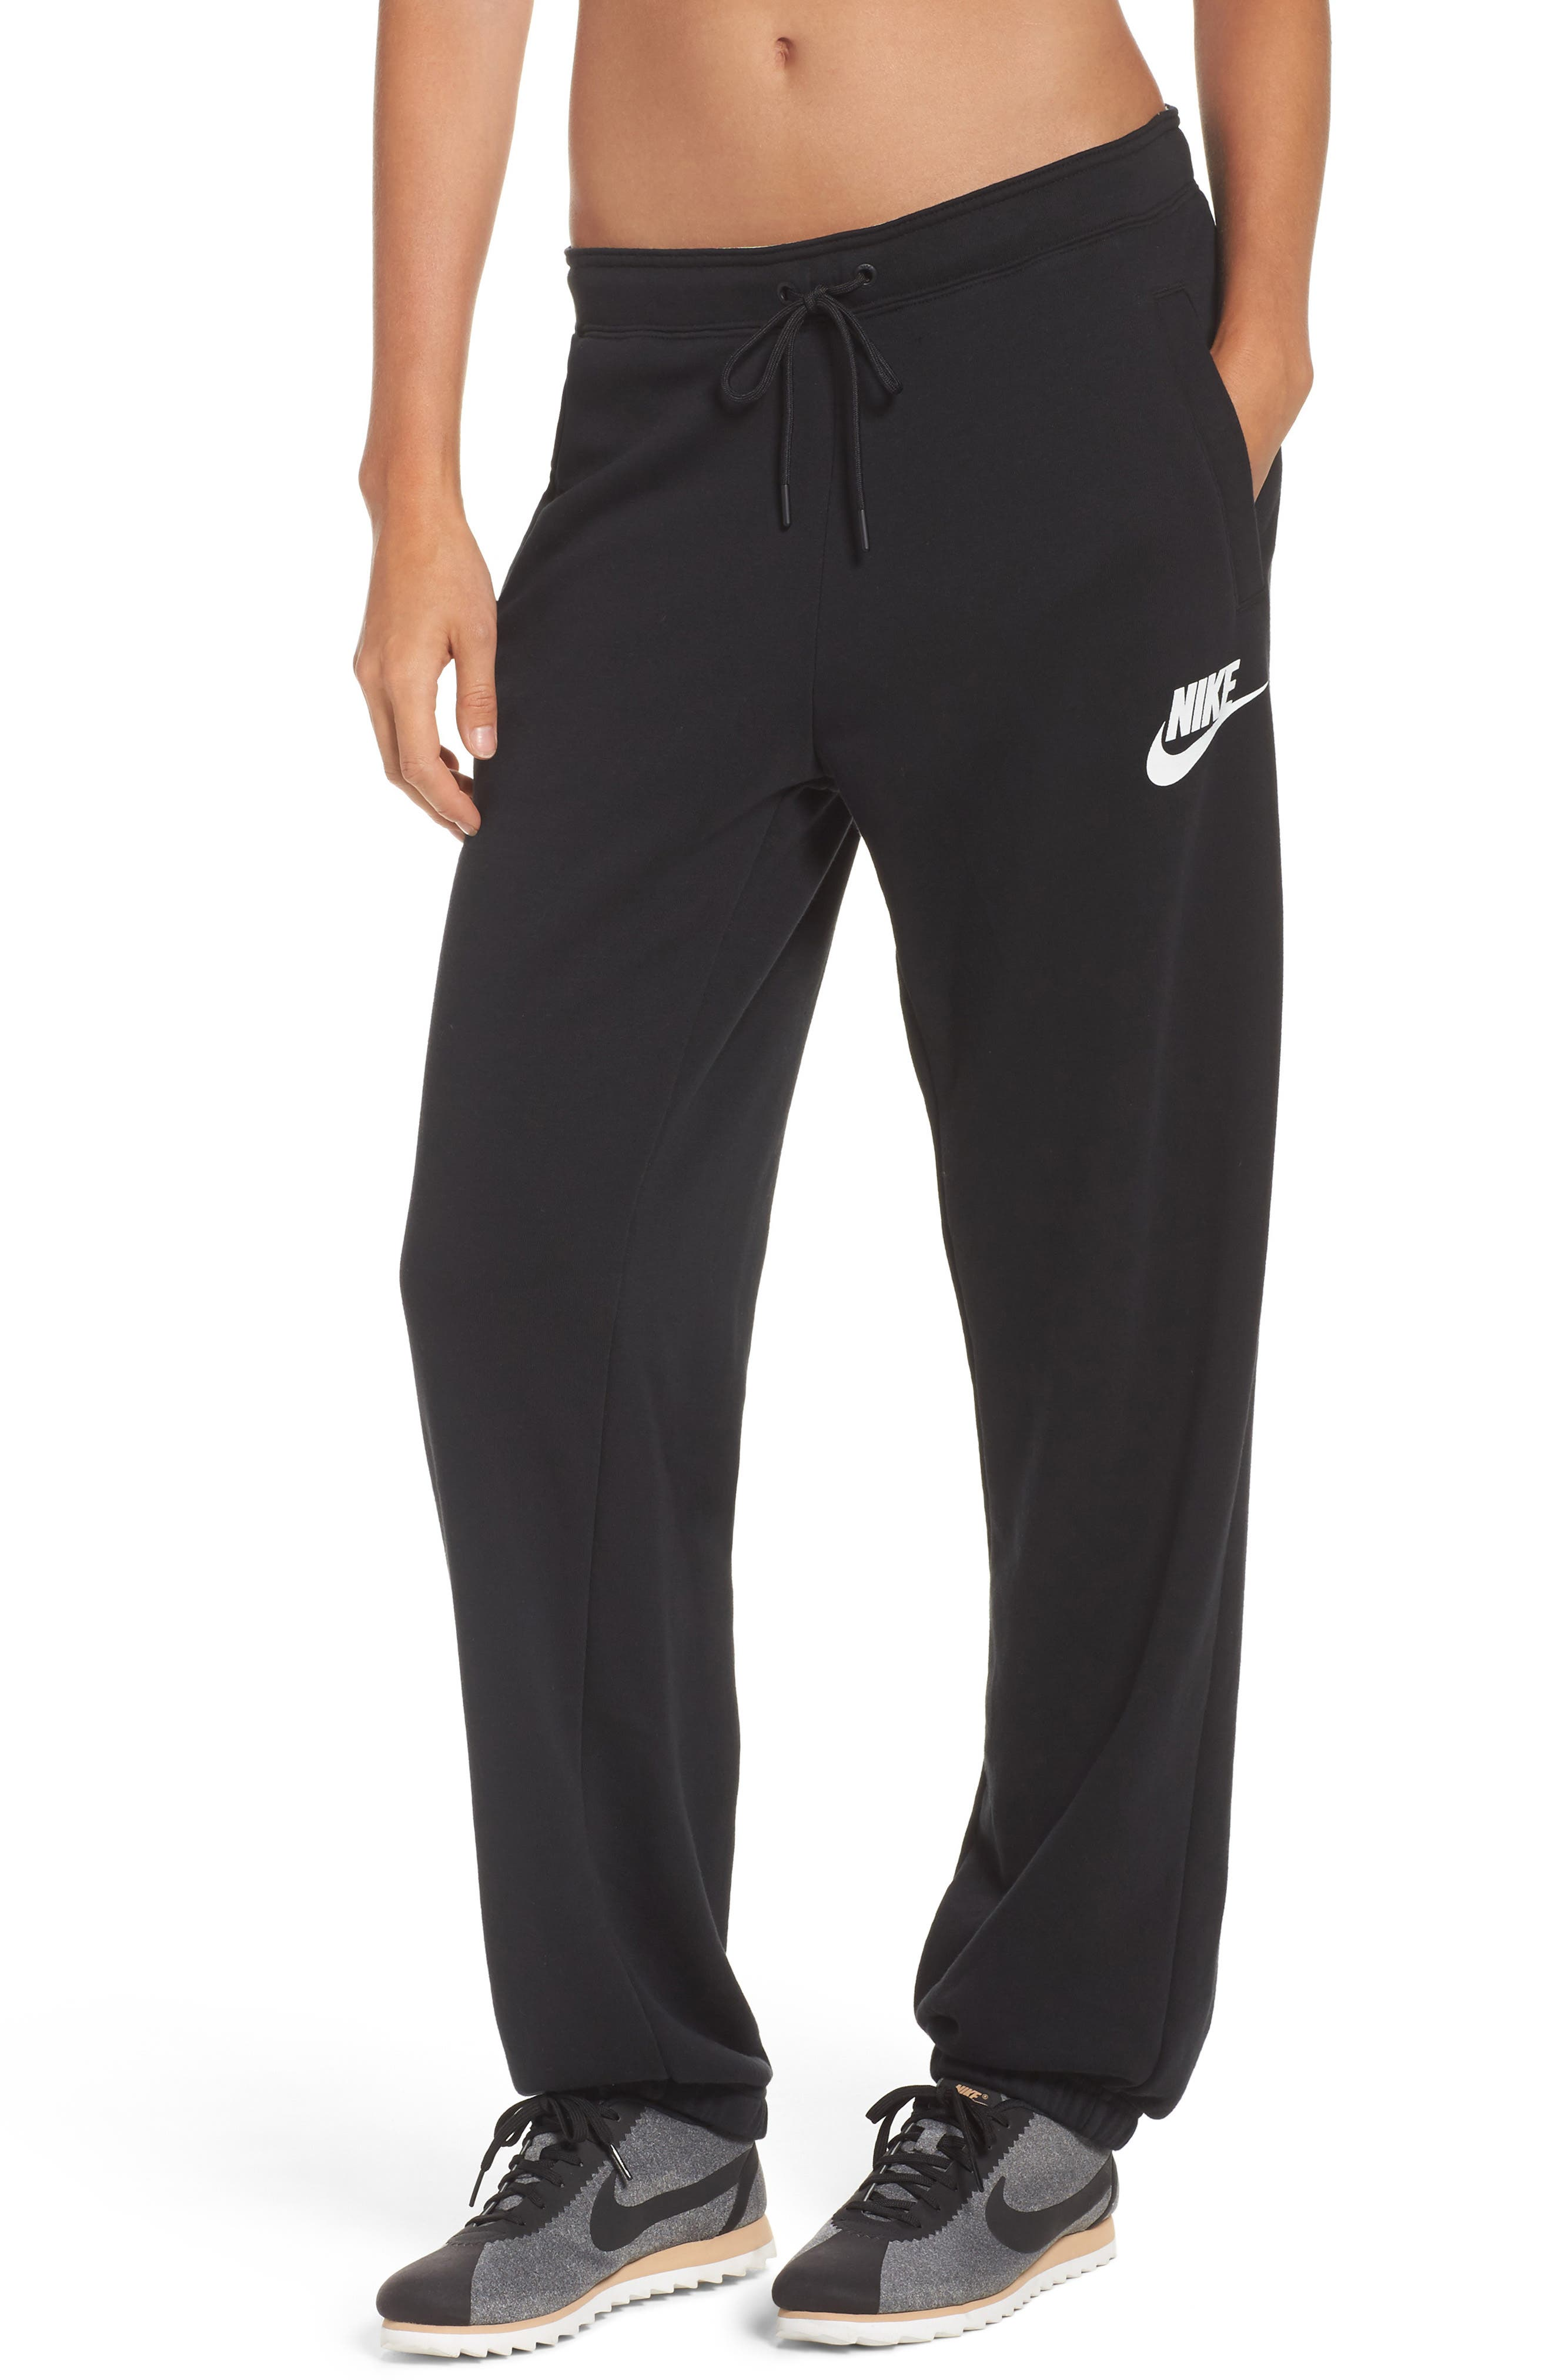 Rally Loose Fit Jogger Sweatpants,                             Main thumbnail 1, color,                             Black/ White